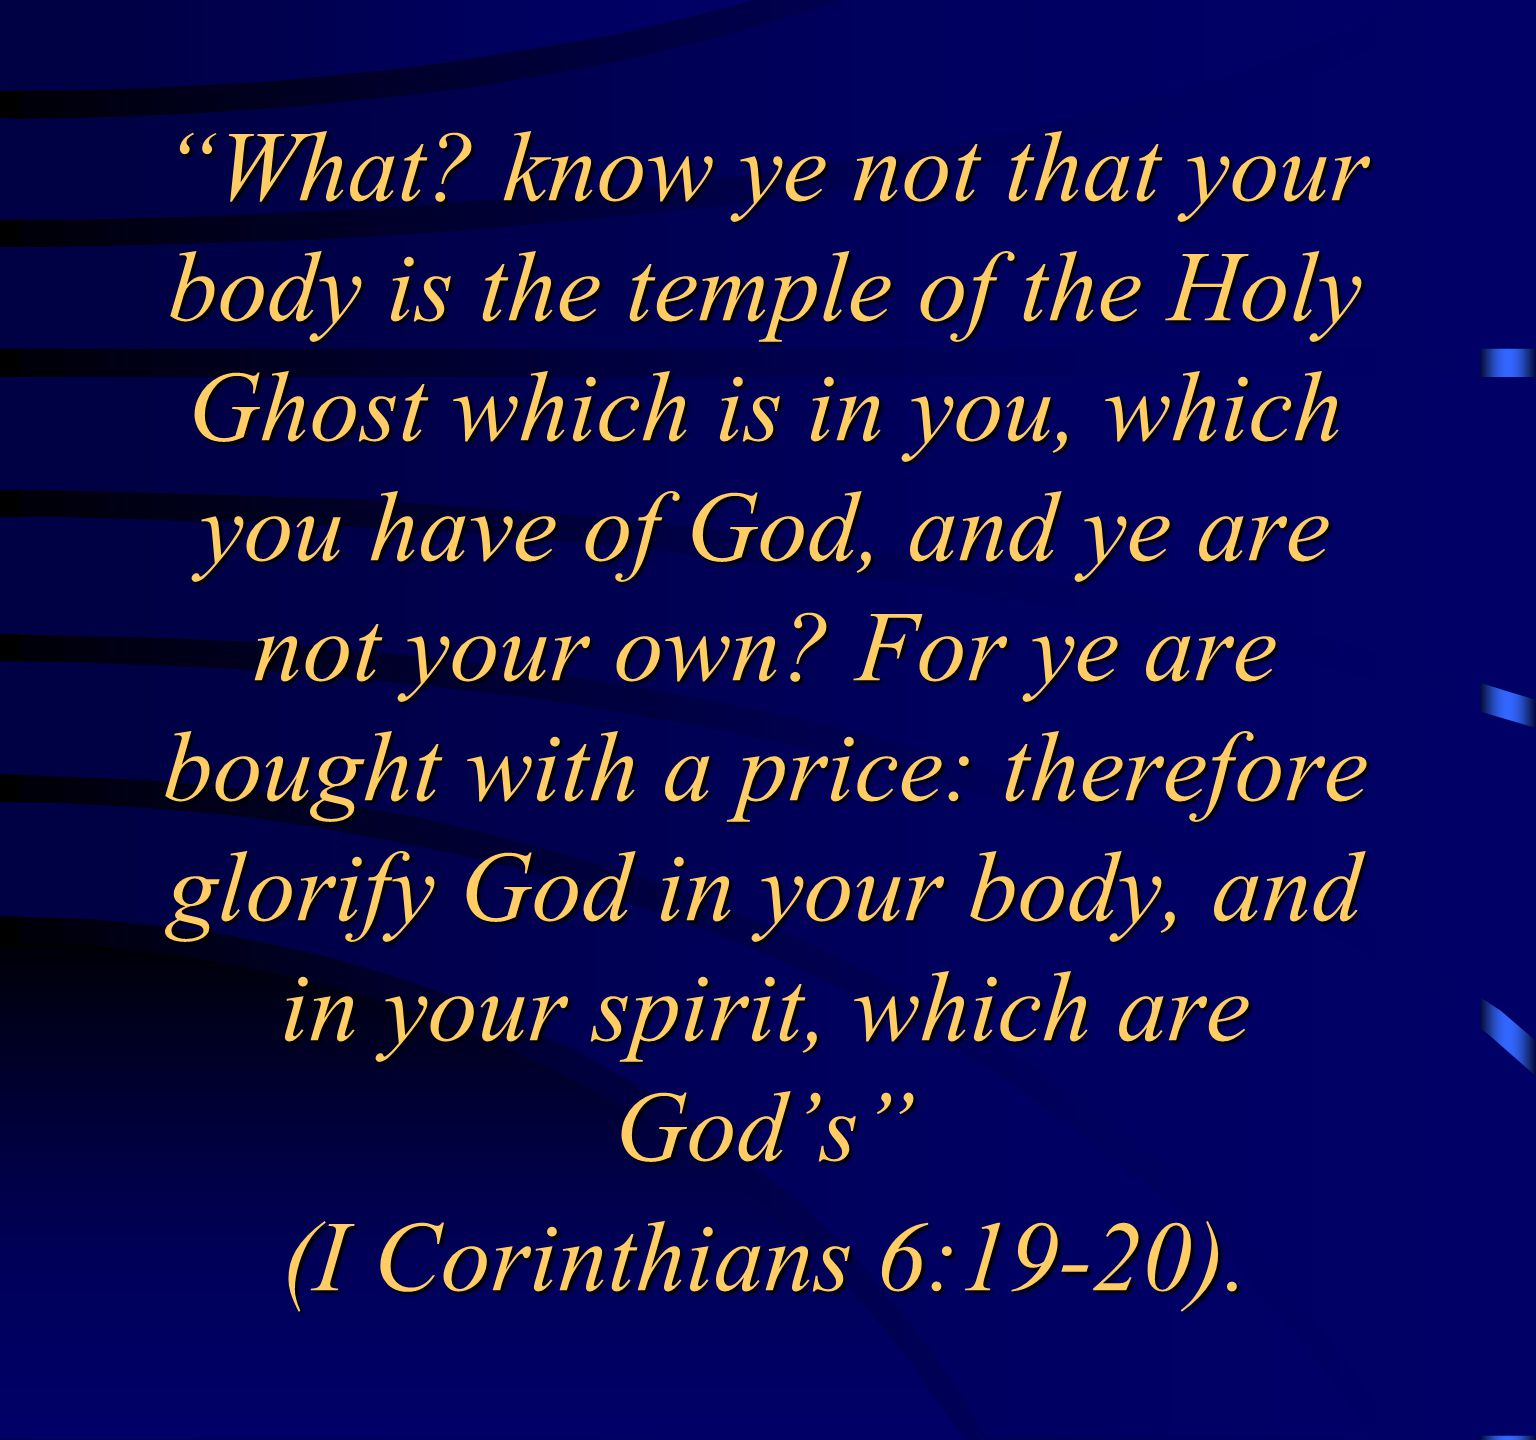 """""""What? know ye not that your body is the temple of the Holy Ghost which is in you, which you have of God, and ye are not your own? For ye are bought w"""